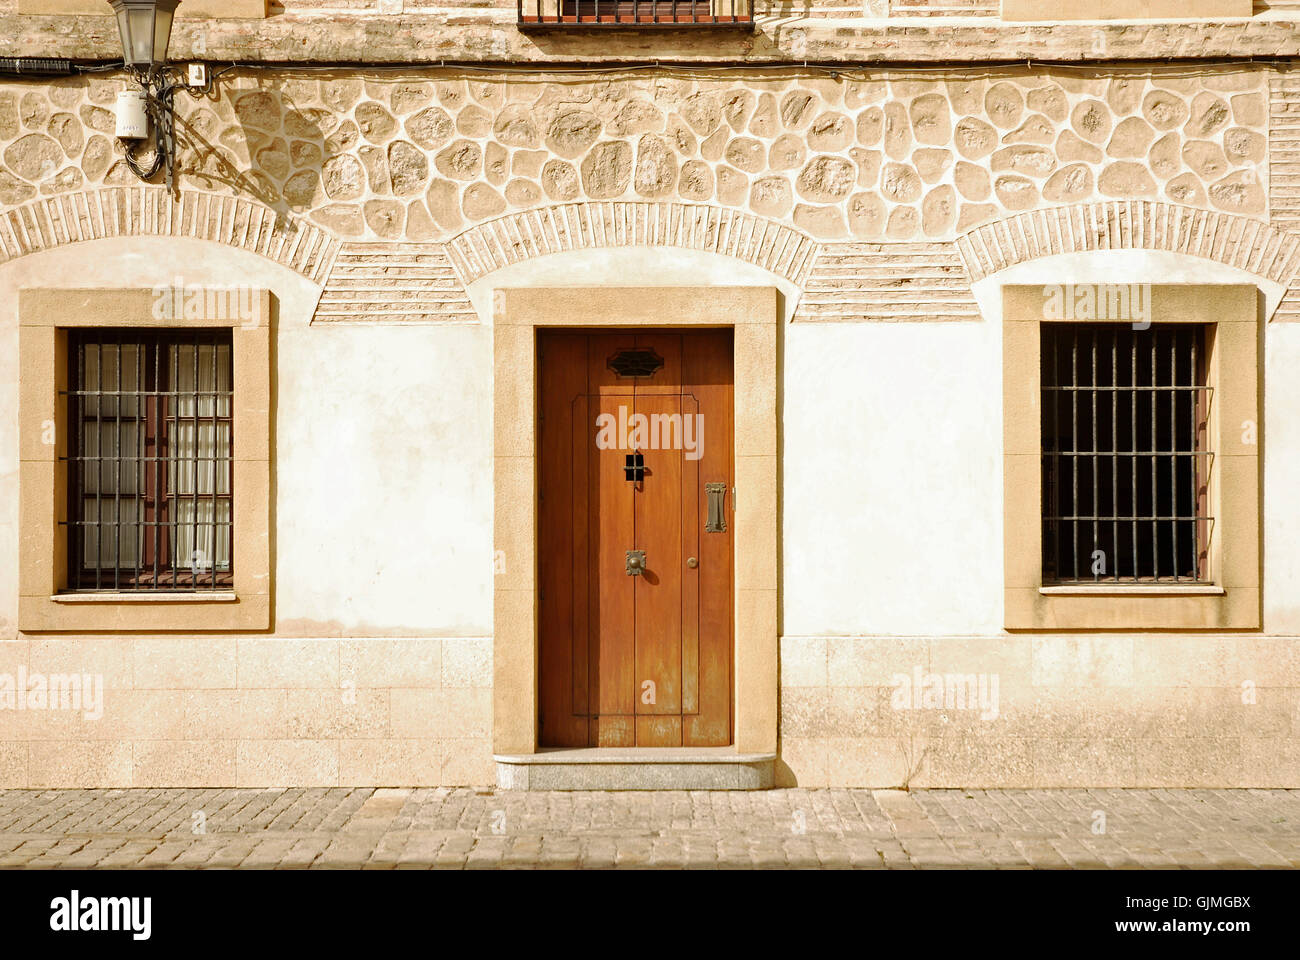 spain facade style of construction Stock Photo